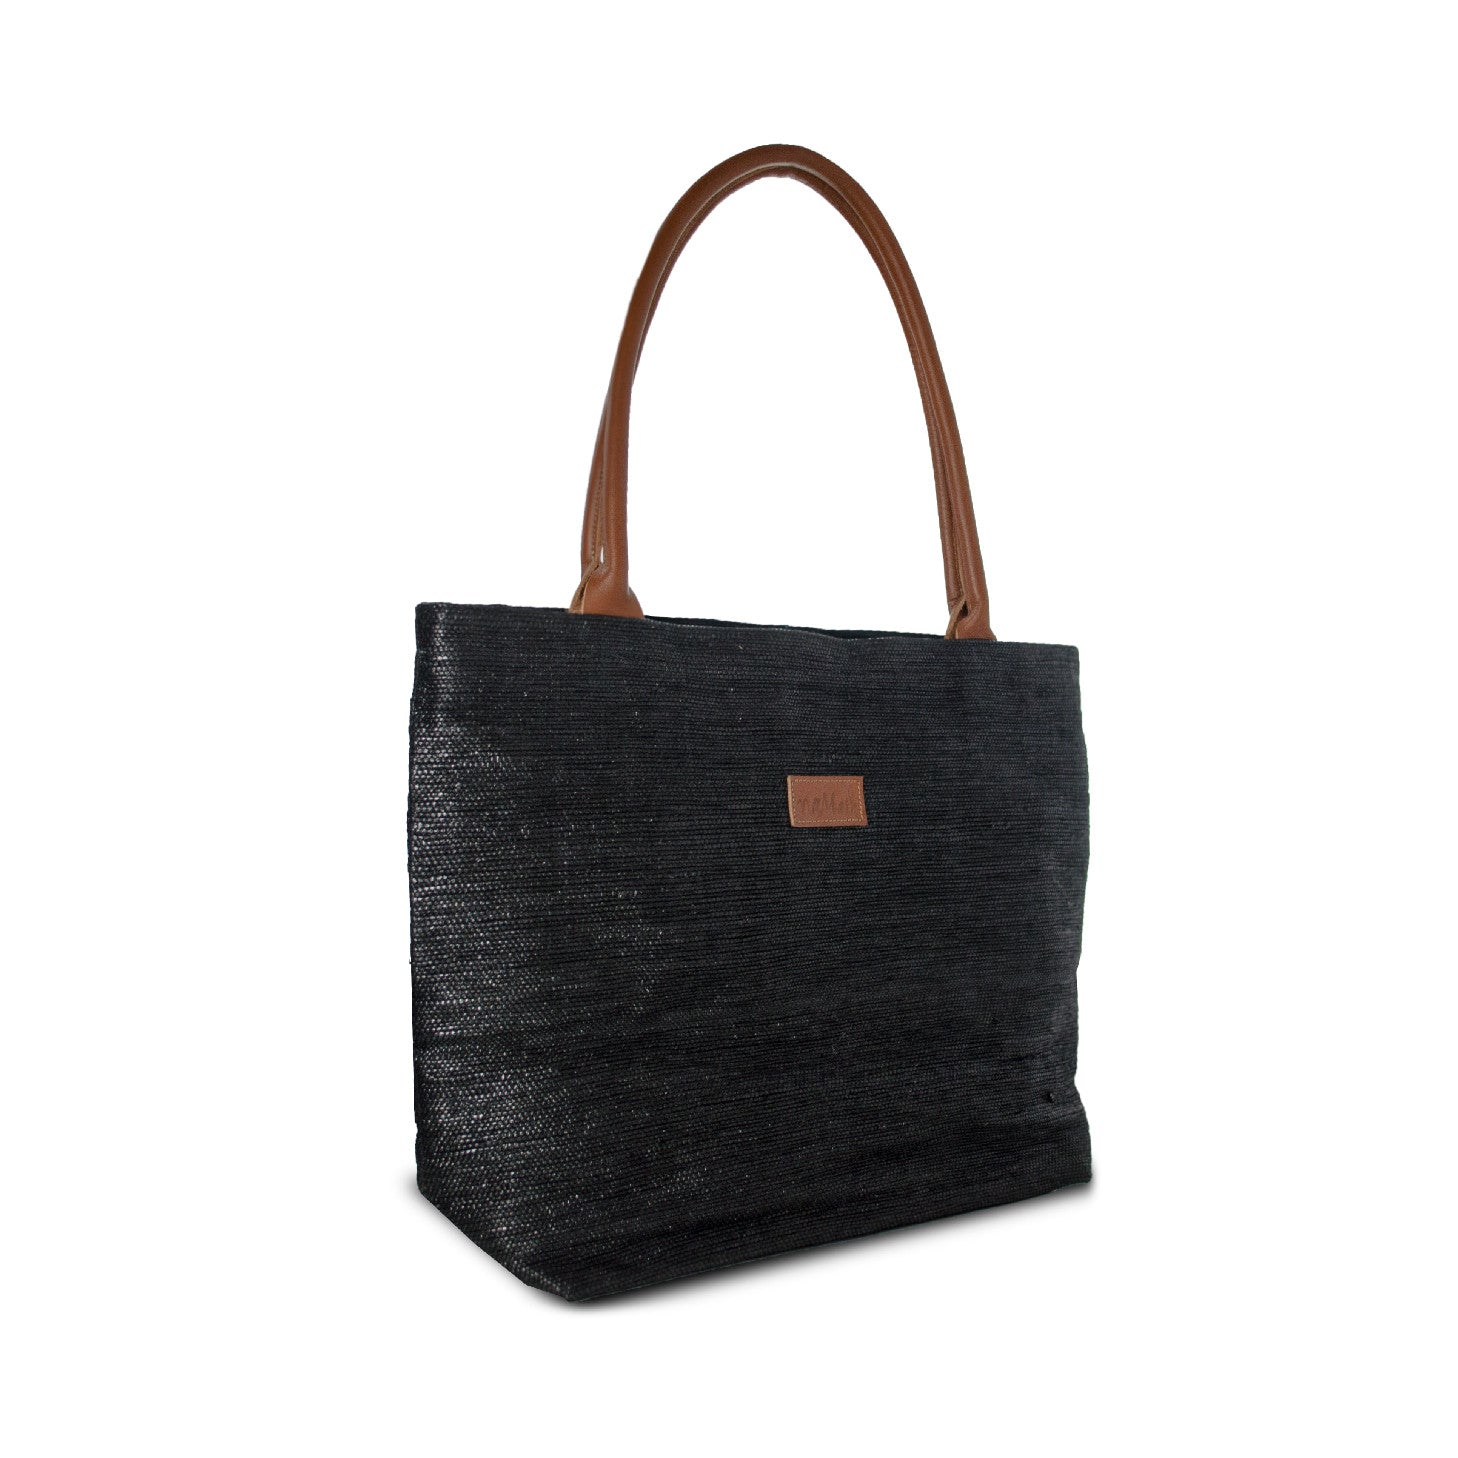 Tote Black & Brown Leather